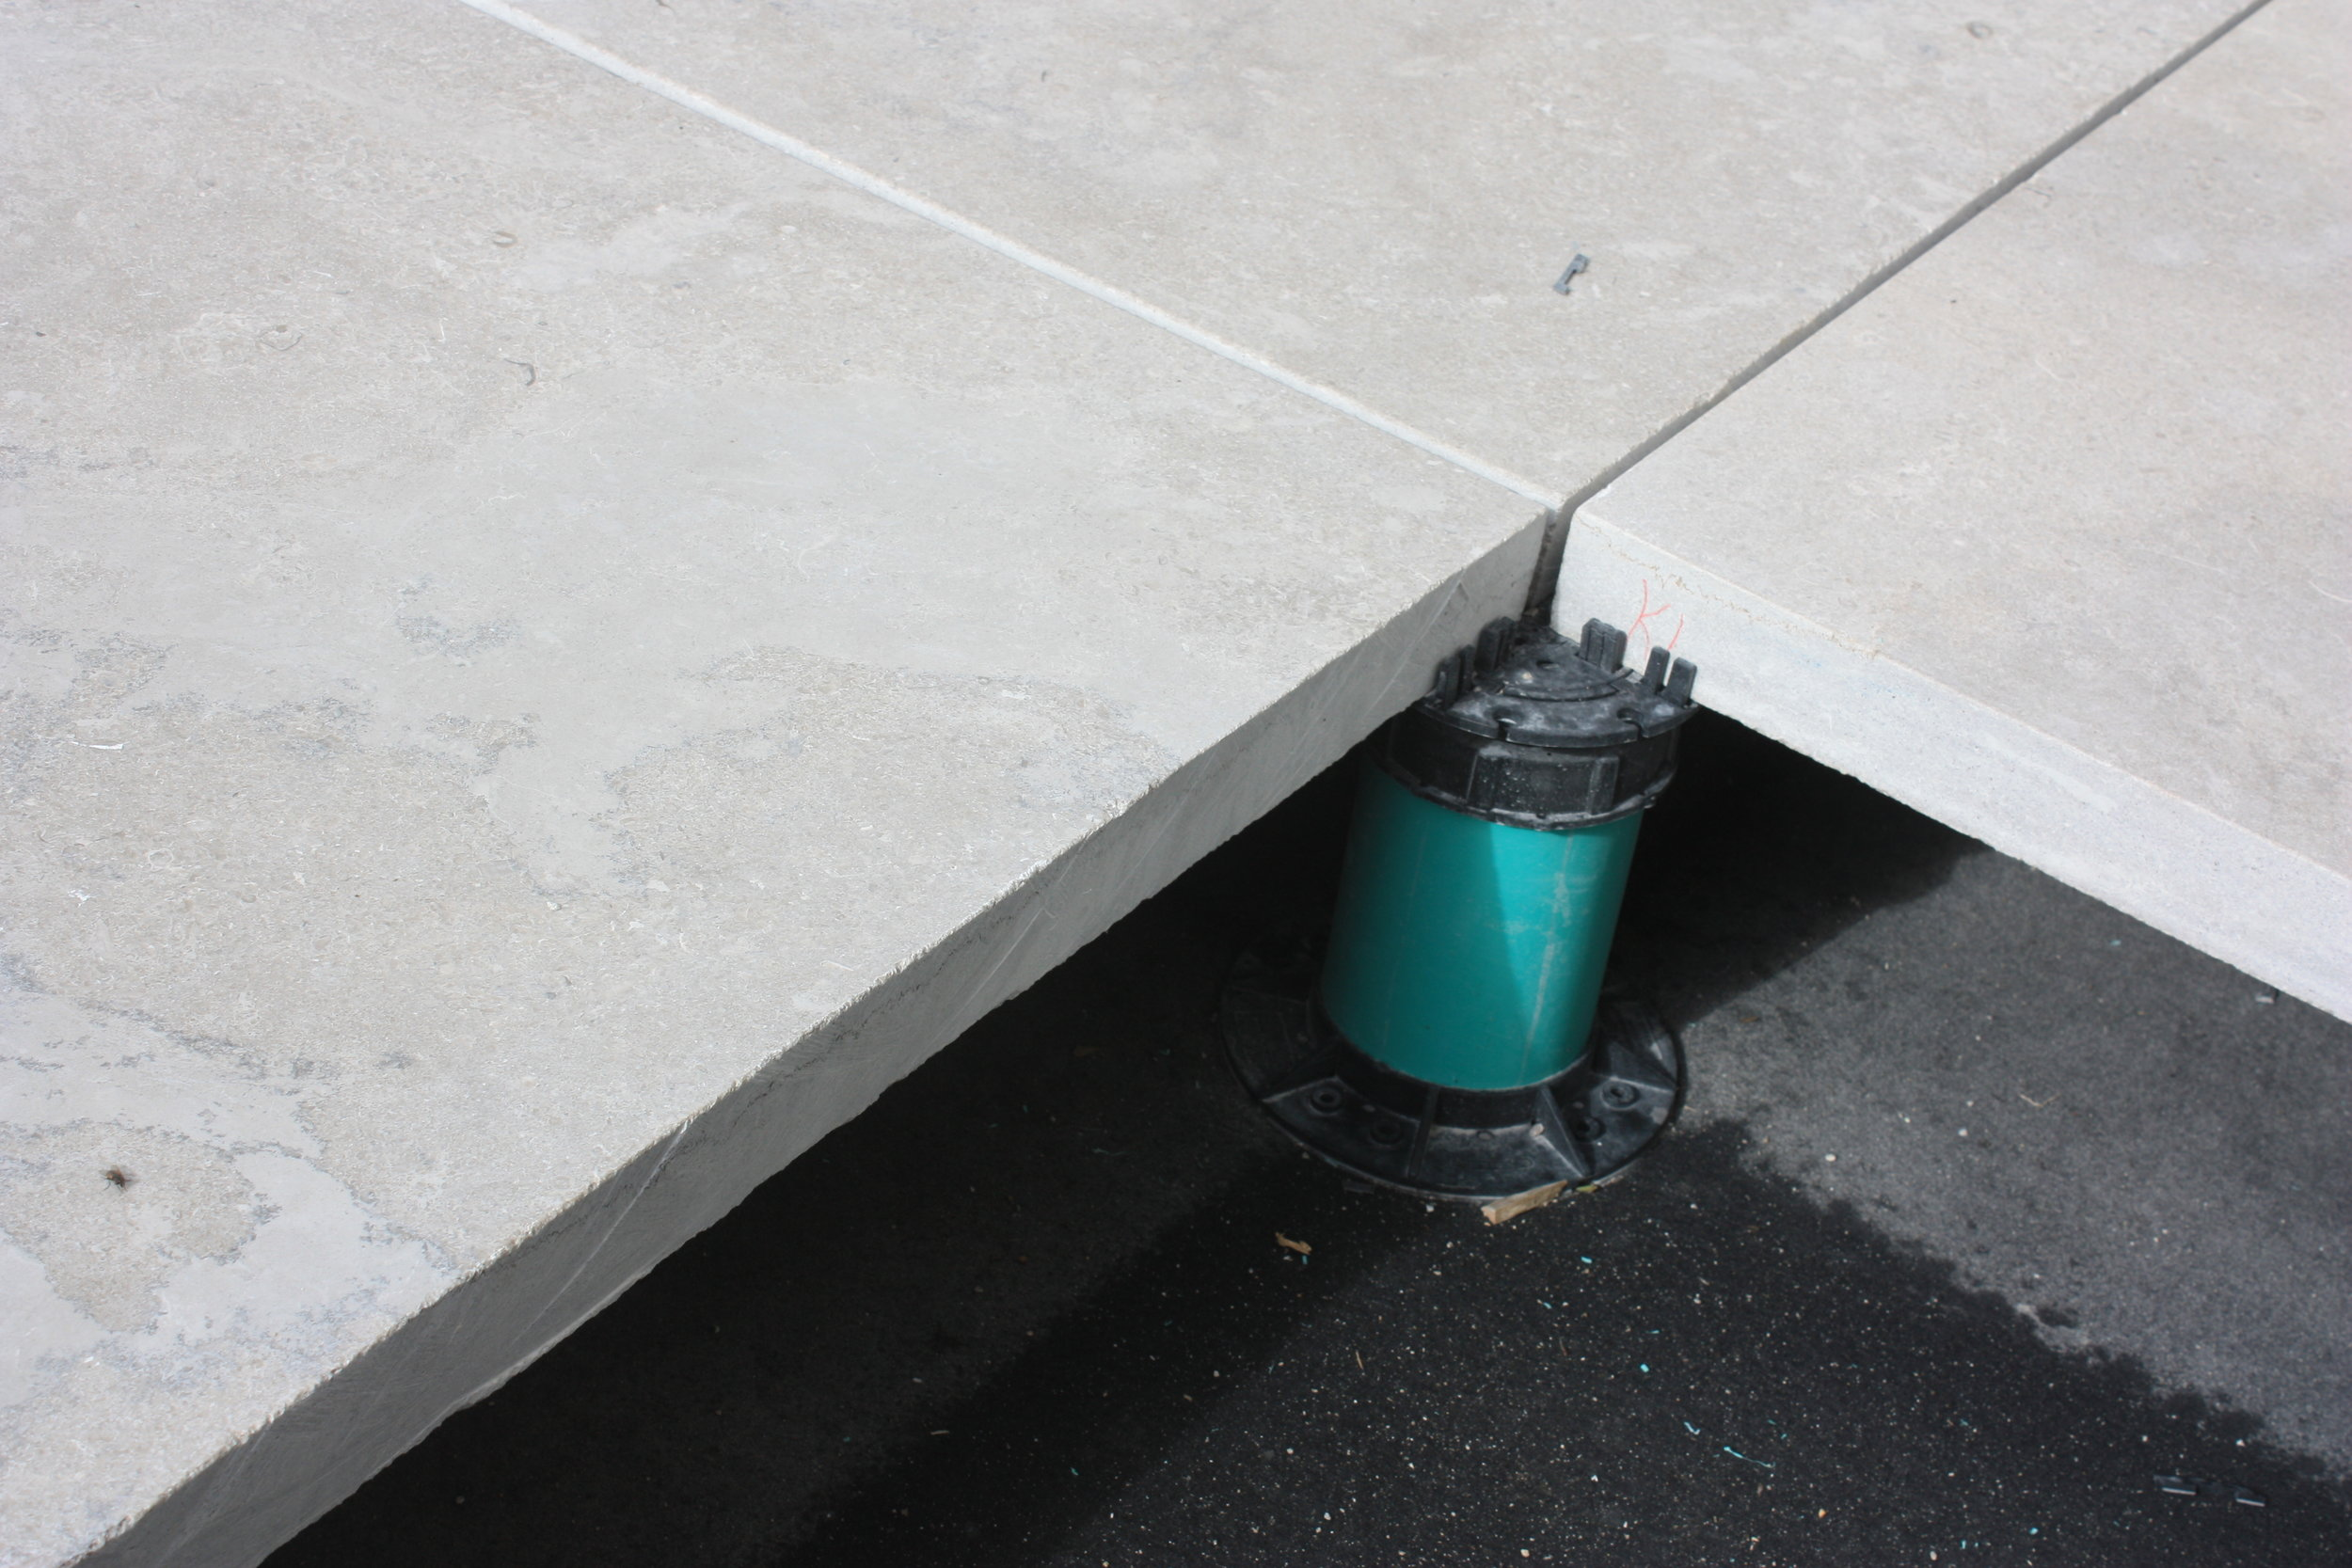 For this project, a pedestal system is being used to install the pavers instead of a base material.